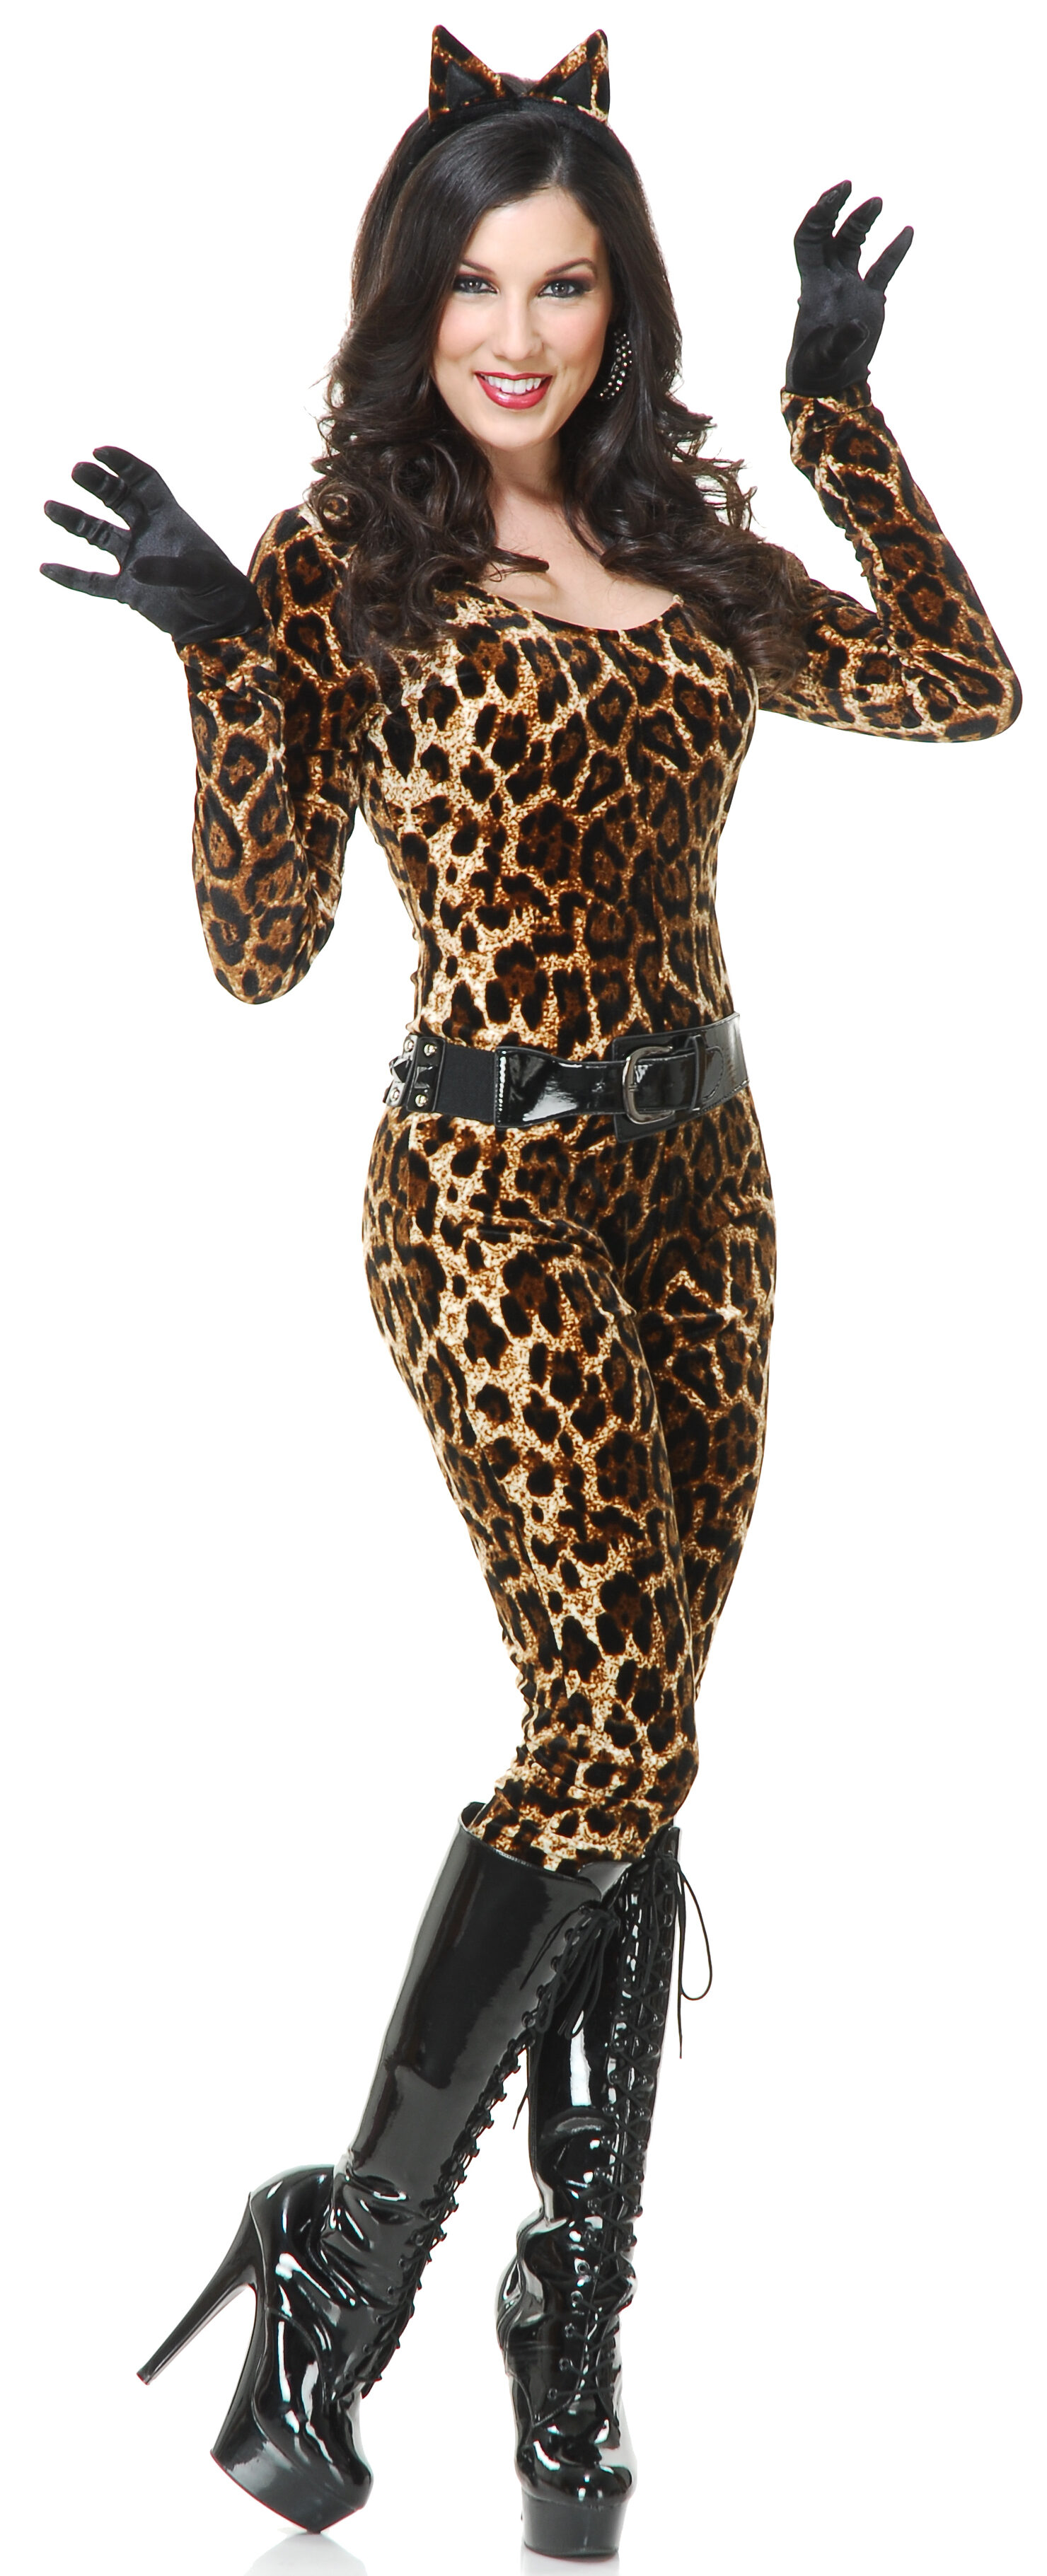 sc 1 st  Mr. Costumes & Sexy Leopard Cutie Cat Costume - Mr. Costumes